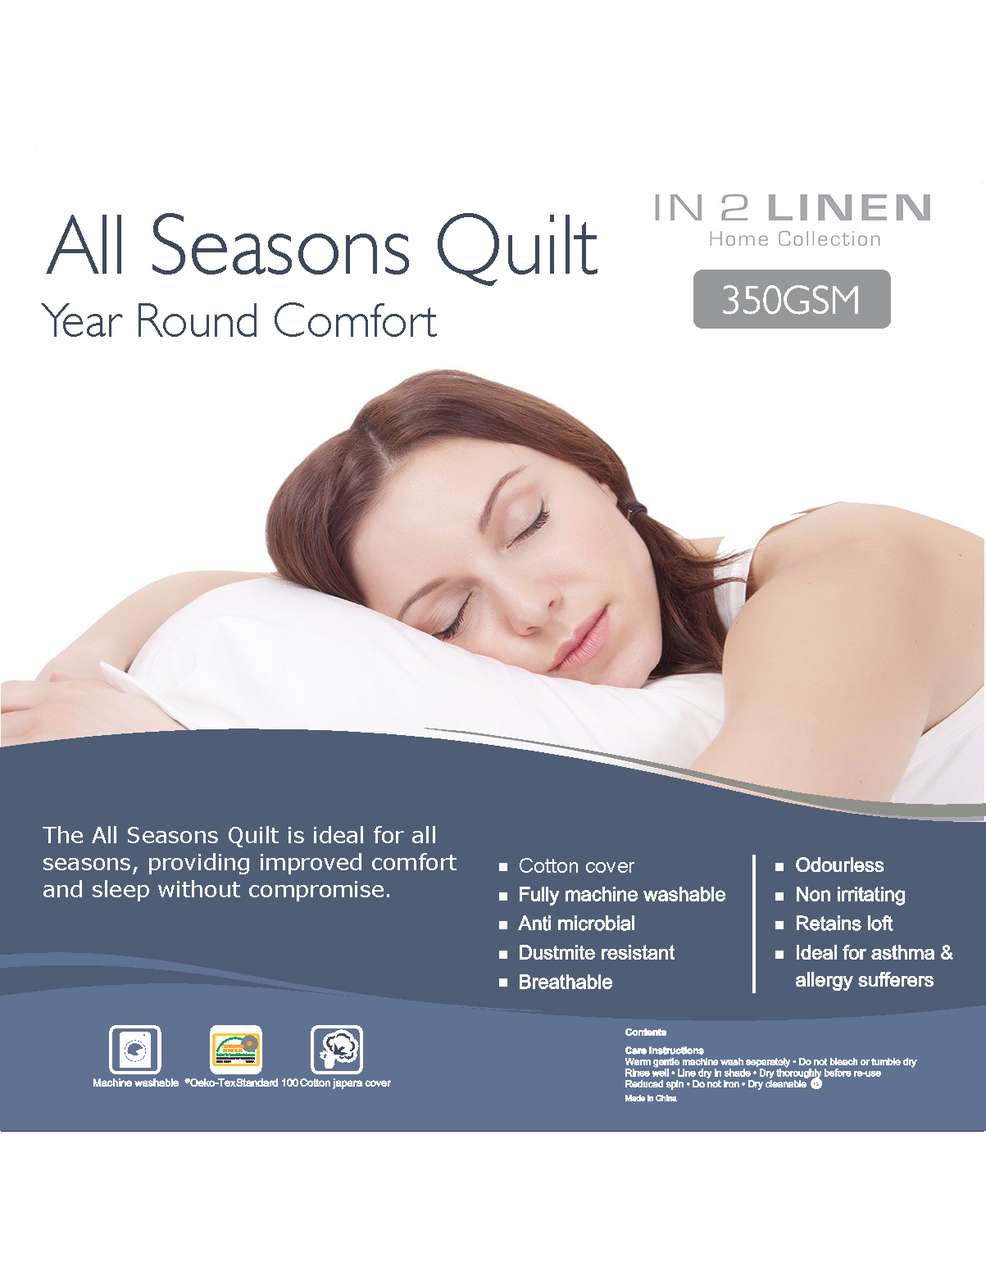 In 2 Linen All Seasons Quilt | 350GSM